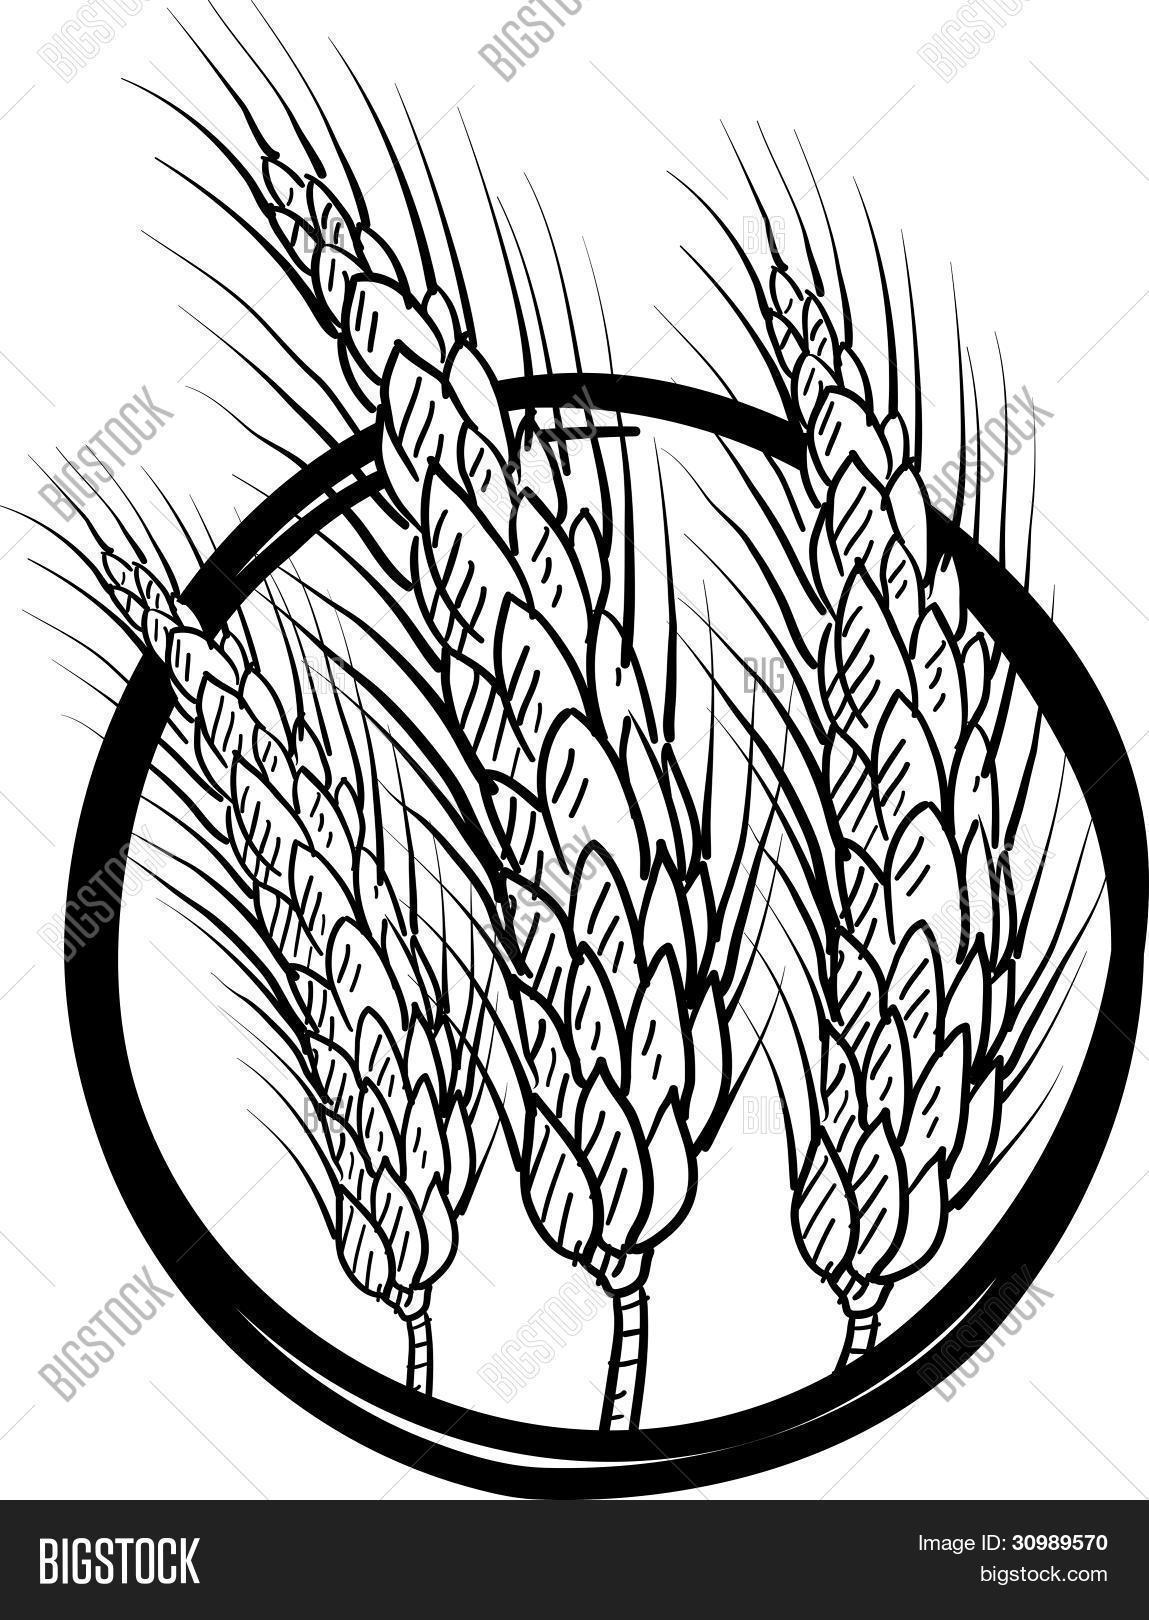 1149x1620 Wheat Grain Sketch Vector Amp Photo Bigstock